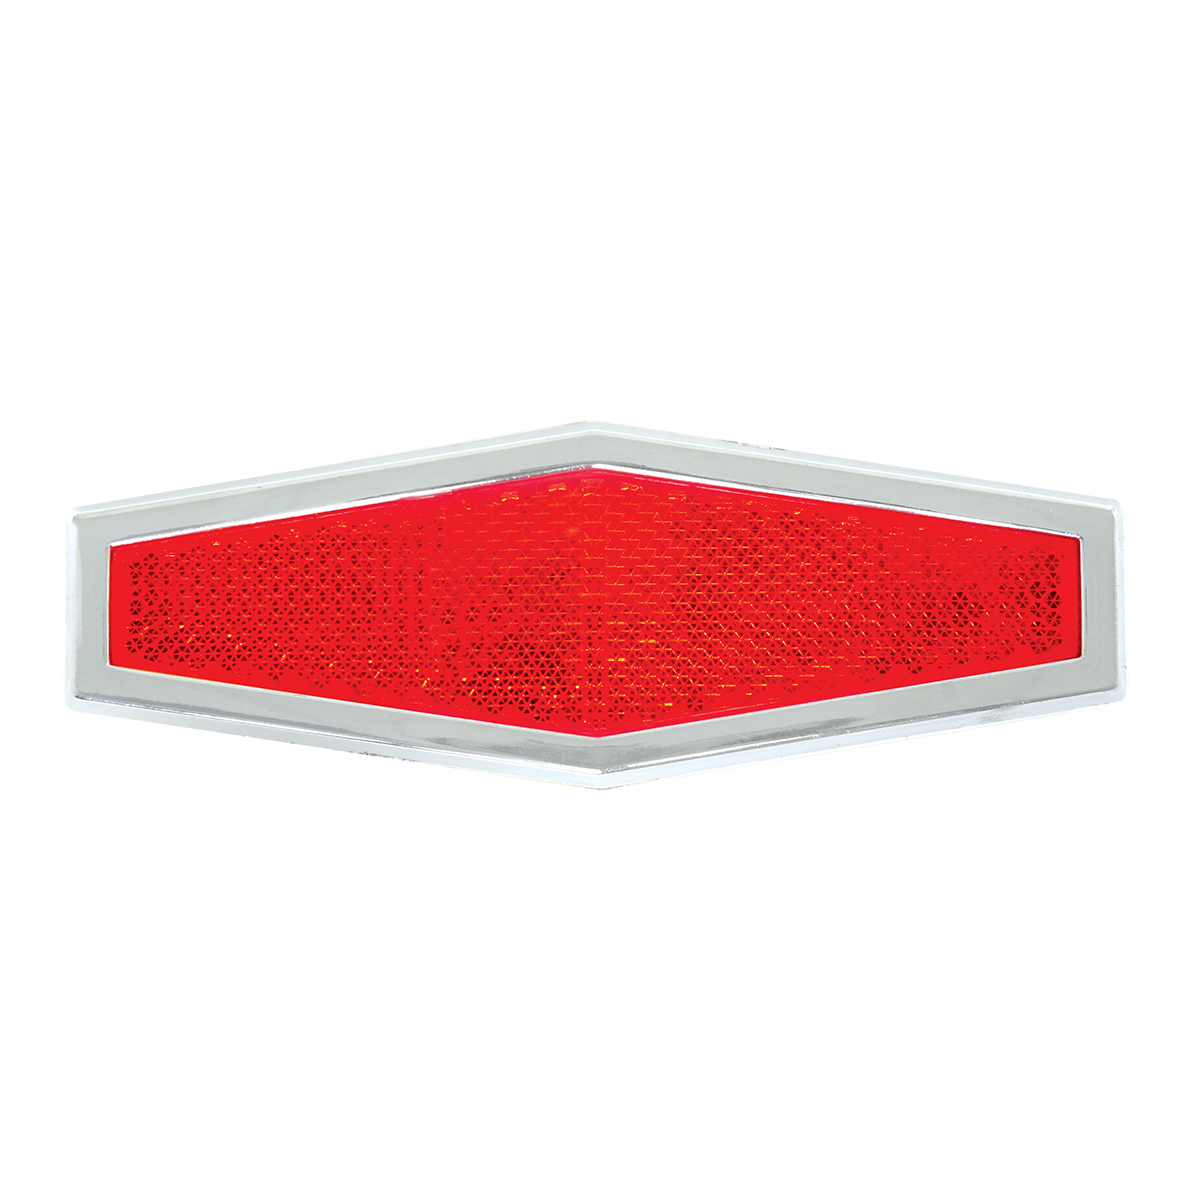 80864 Red Diamond Shape Stick-On Reflector w/ Chrome Trim